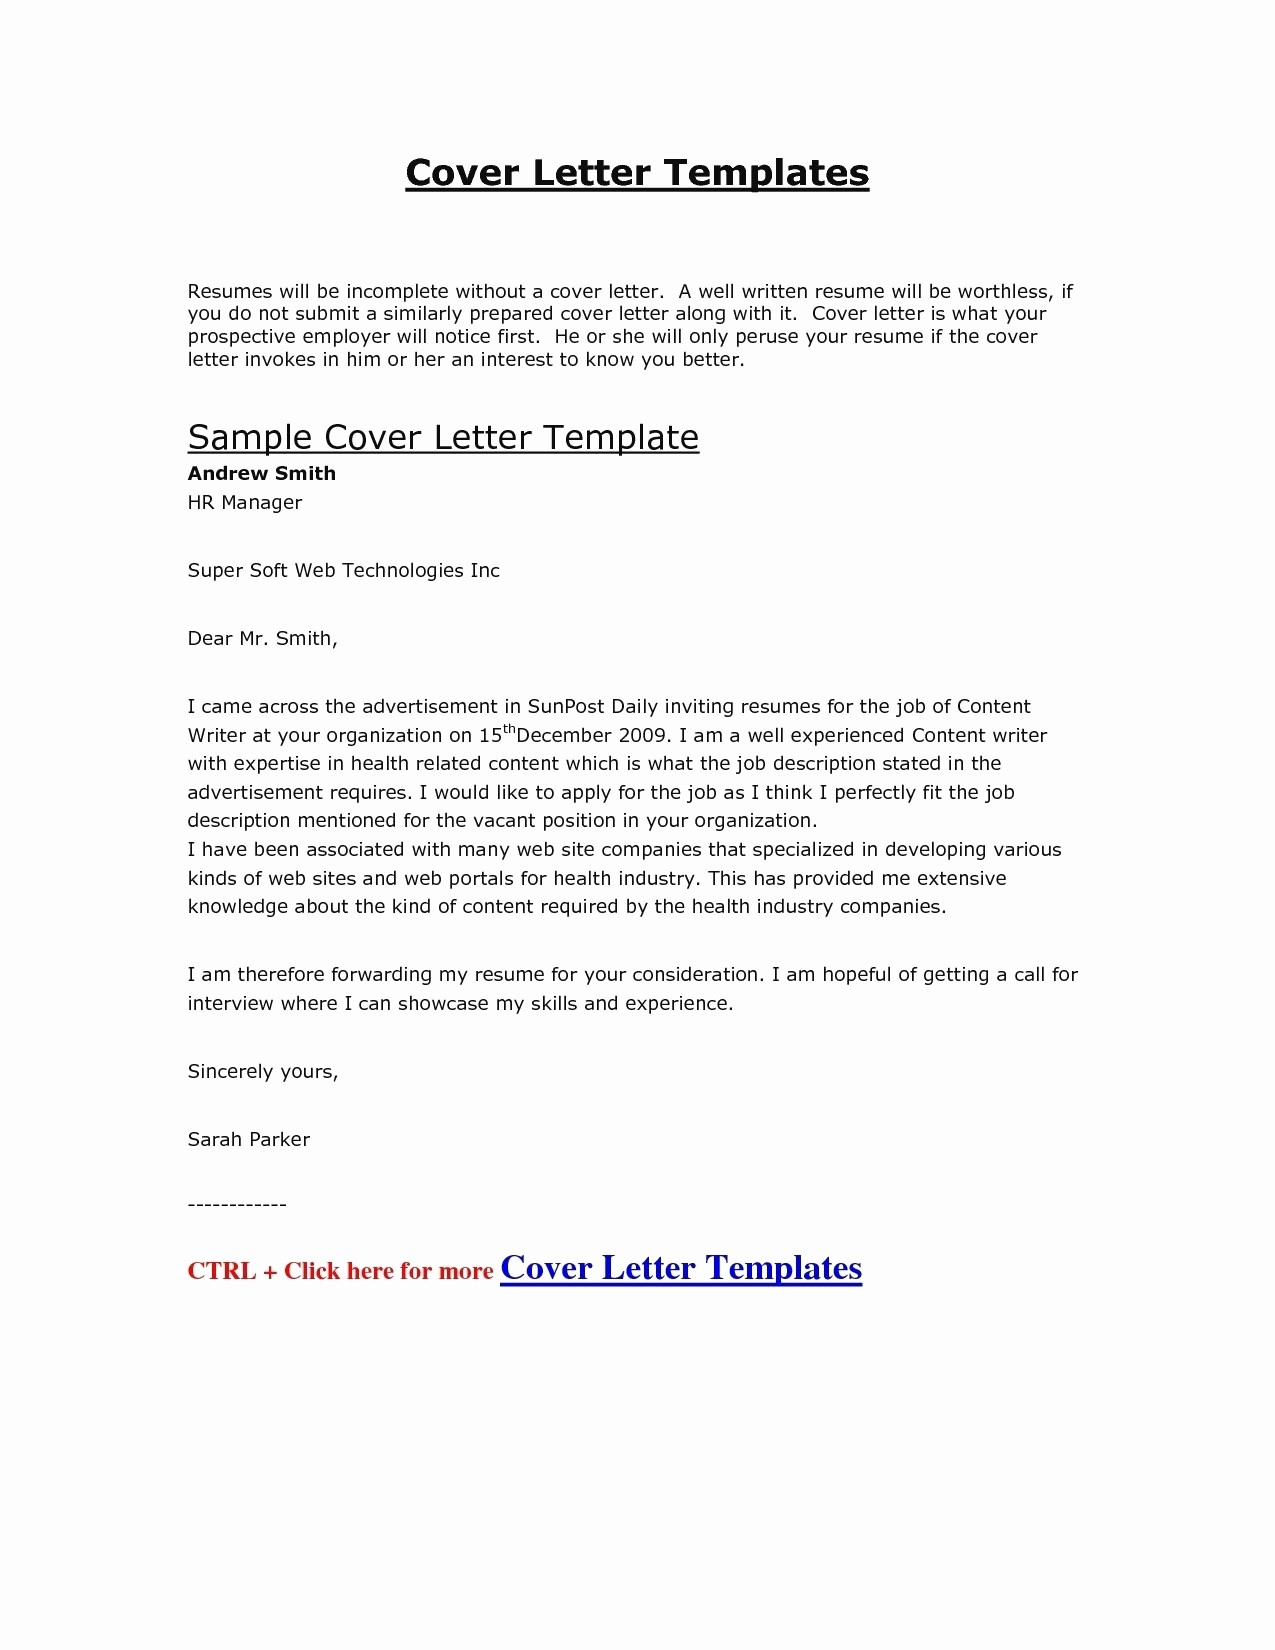 How to Write A Cover Letter Template - Job Application Letter format Template Copy Cover Letter Template Hr